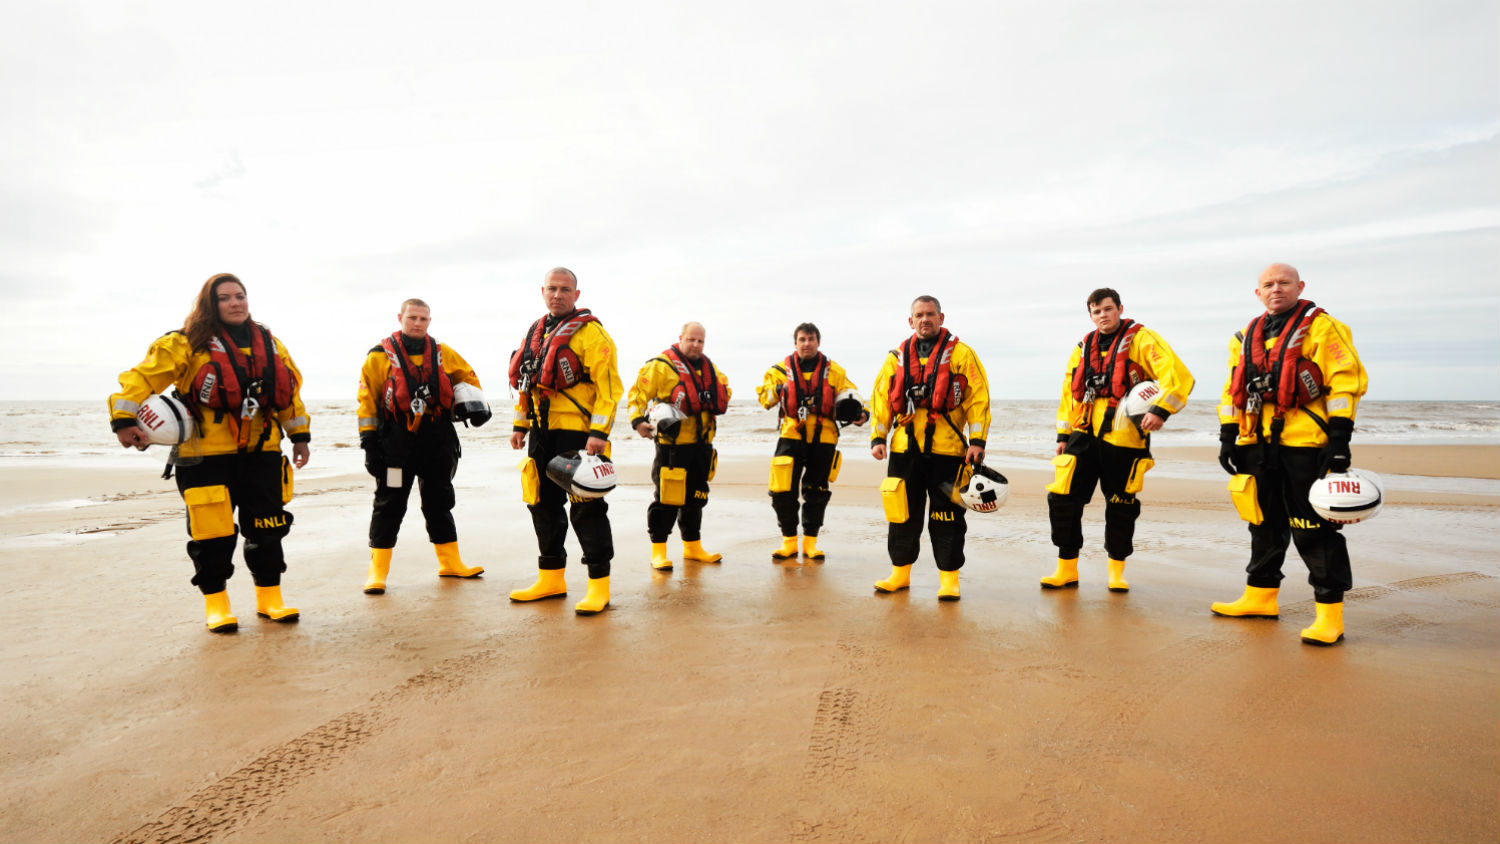 Group shot of RNLI crew members